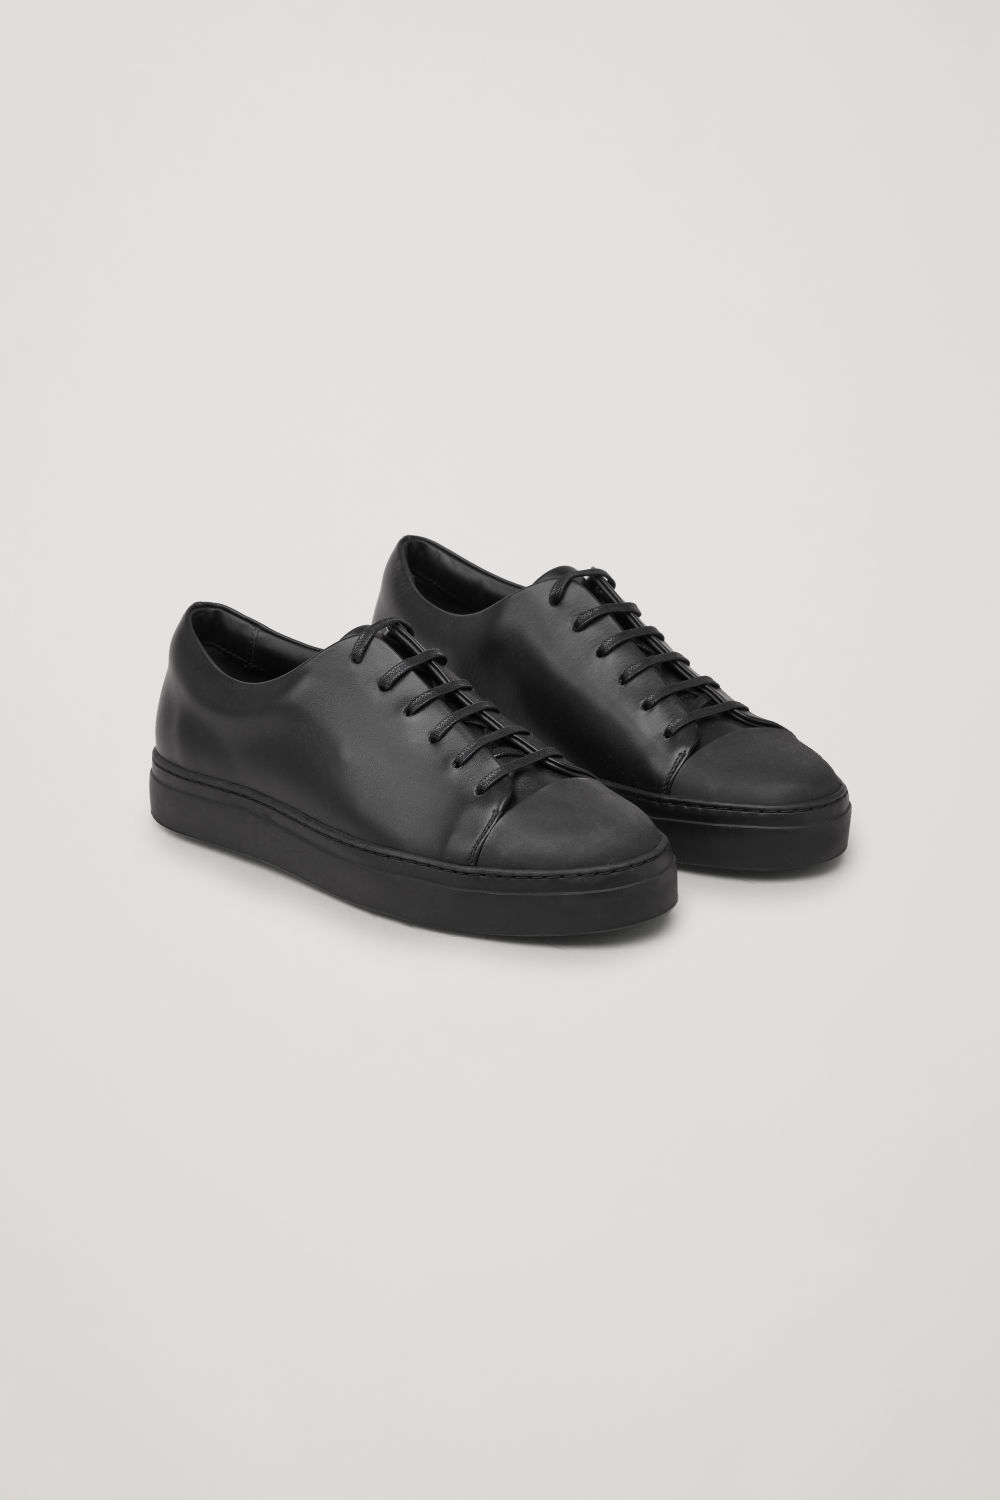 COS New Leather Mens Black Shoes Size 40